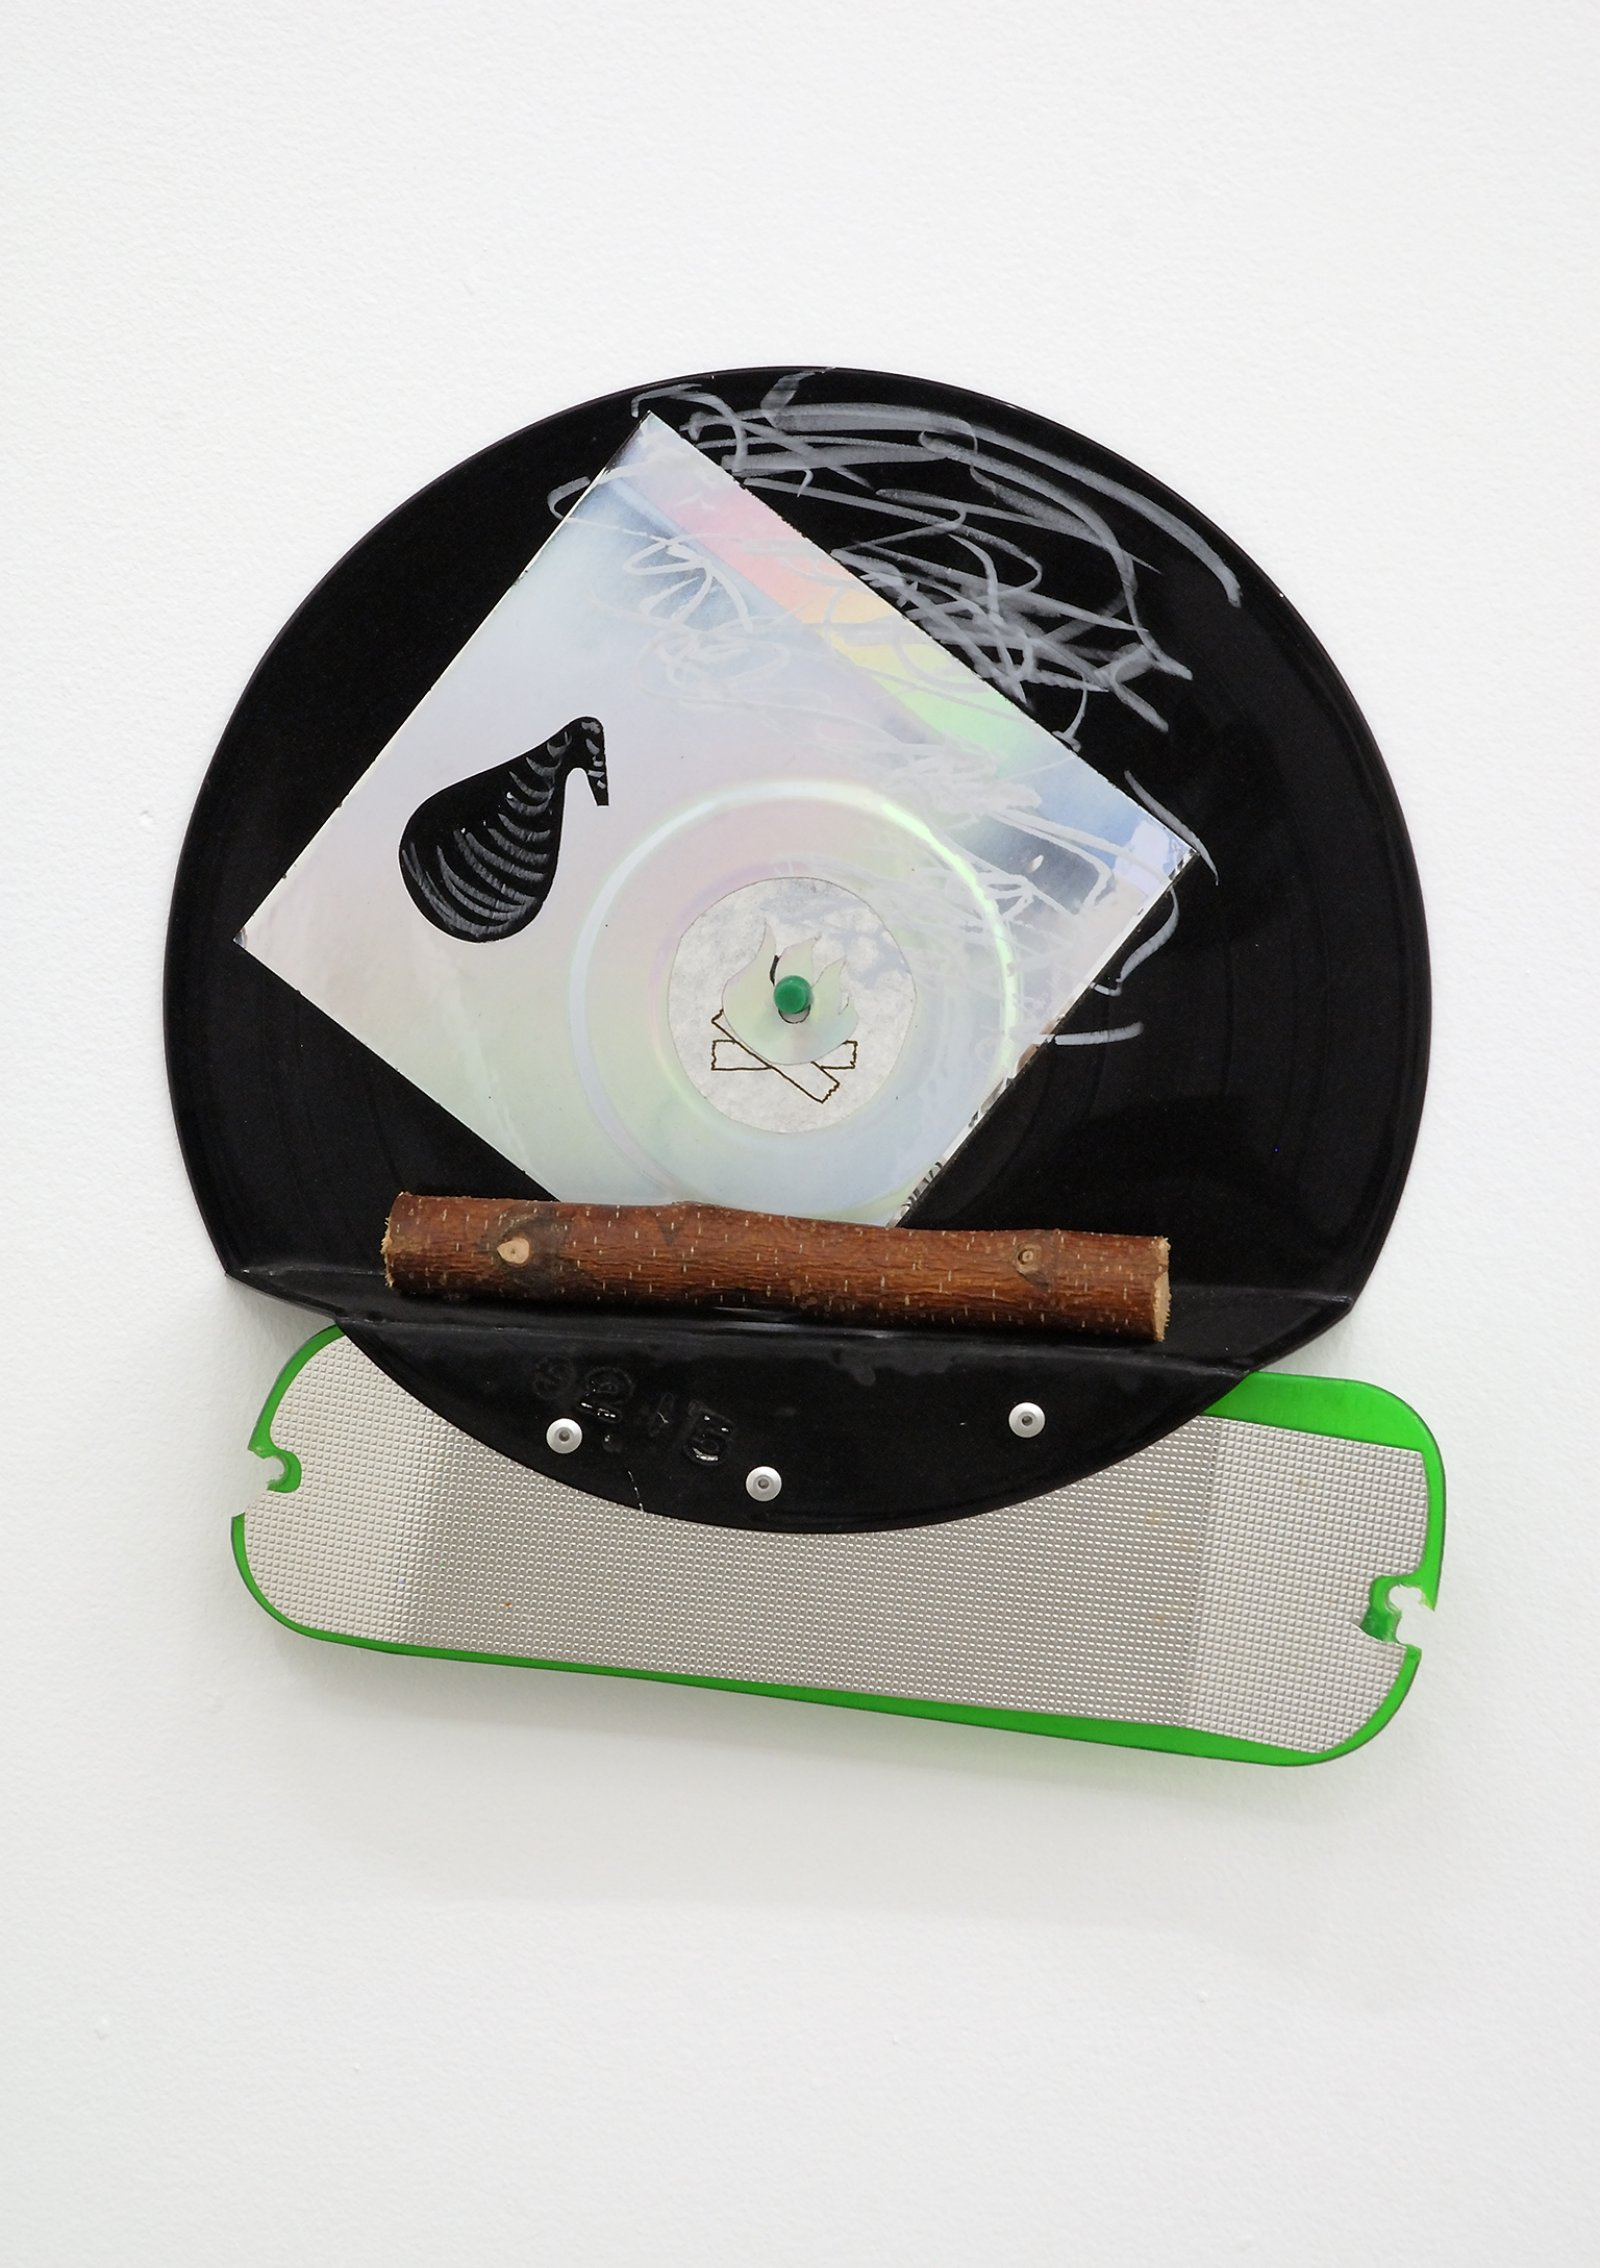 Jerry Pethick, Black Retort Travelogue, 1991/1992, Phonograph record, crayon, spectrafoil, plastic fishing lure, piece of wooden branch, metal screws, 12 x 13 x 2 in. (30 x 32 x 5 cm)   by Jerry Pethick